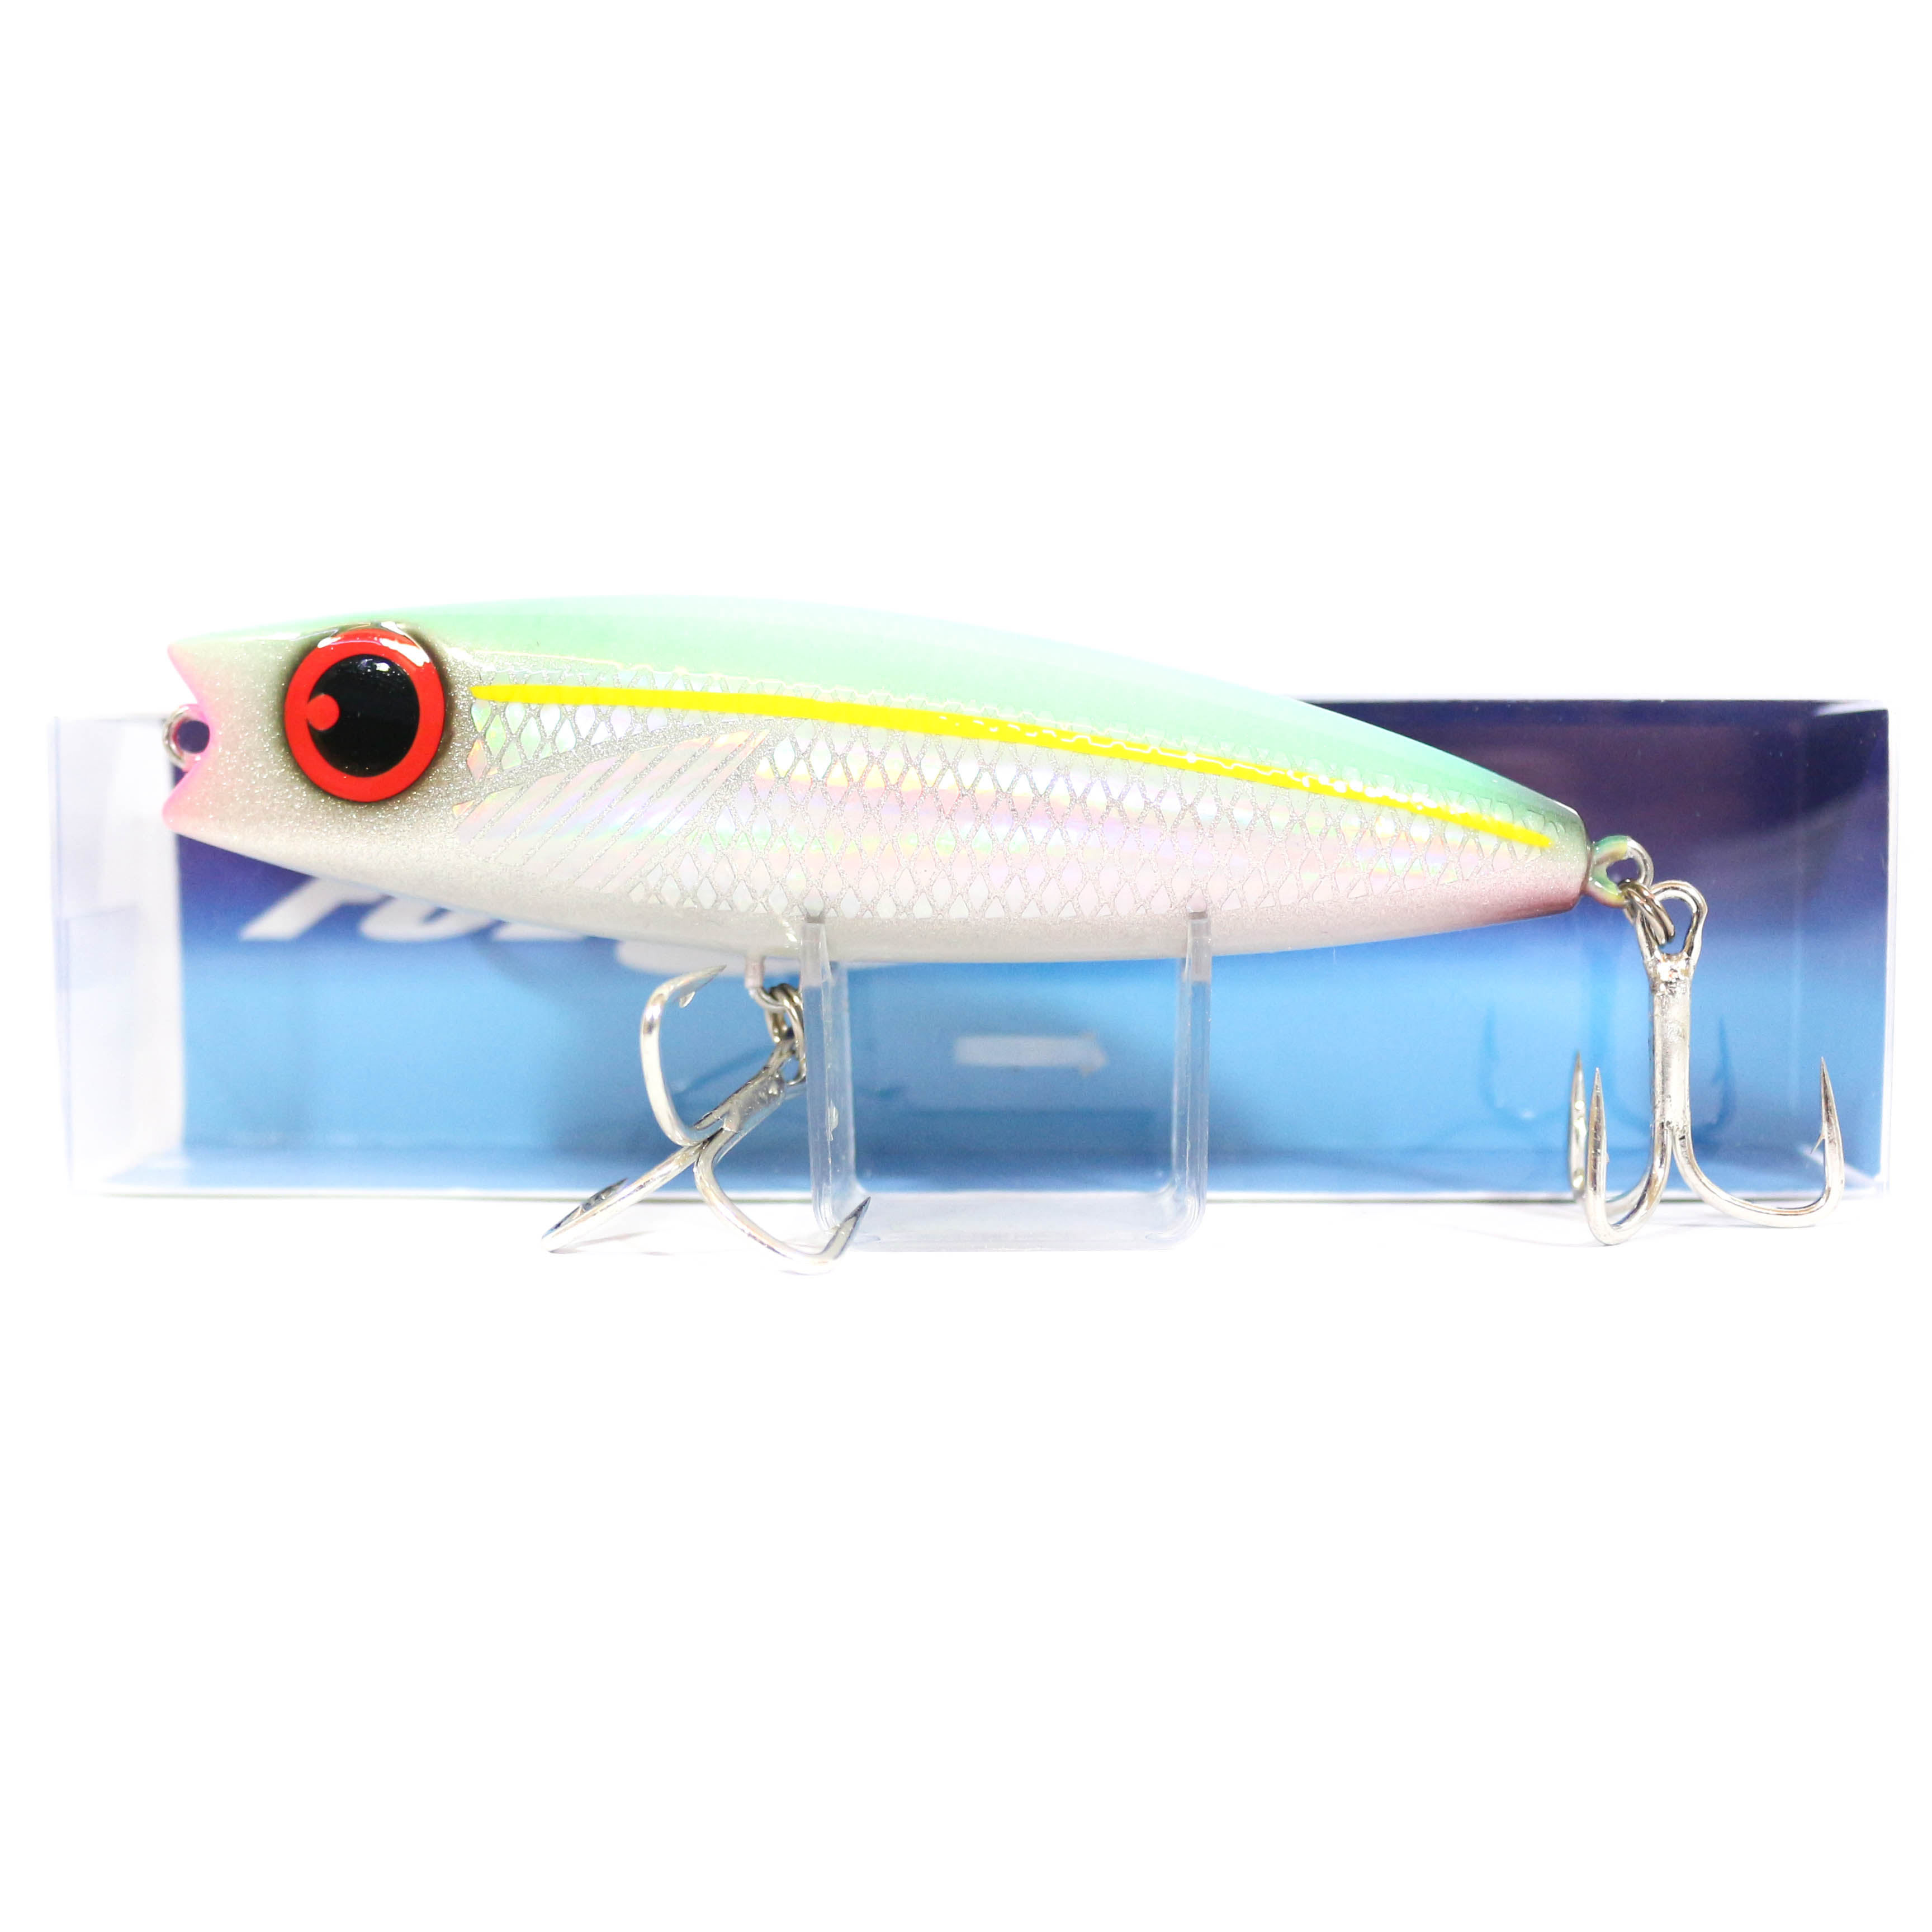 FCL Labo Stick Bait CSP 110 F Floating Lure 30 grams BNF (4113)